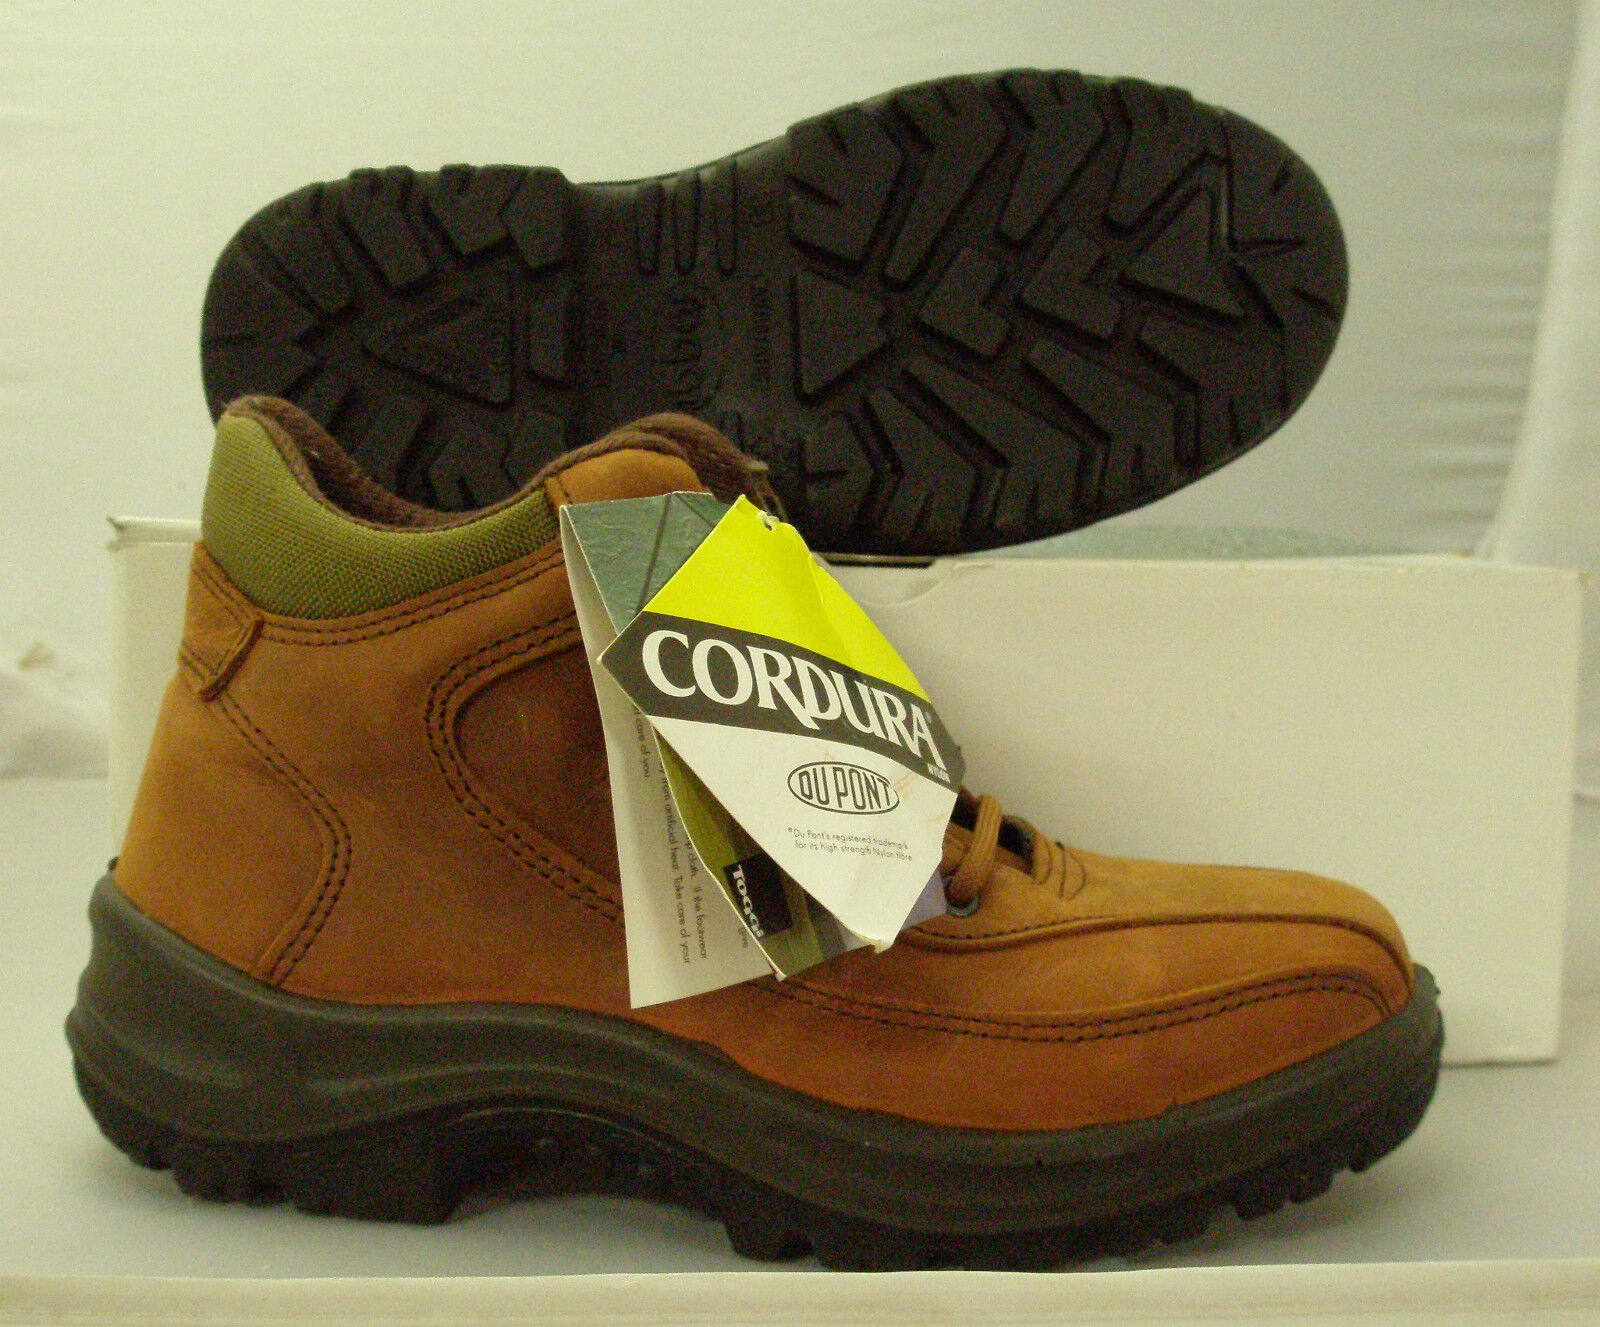 89381a5bc Toggi Boots - Olive or Terracotta In A Range Of Sizes Genoa Walking ...